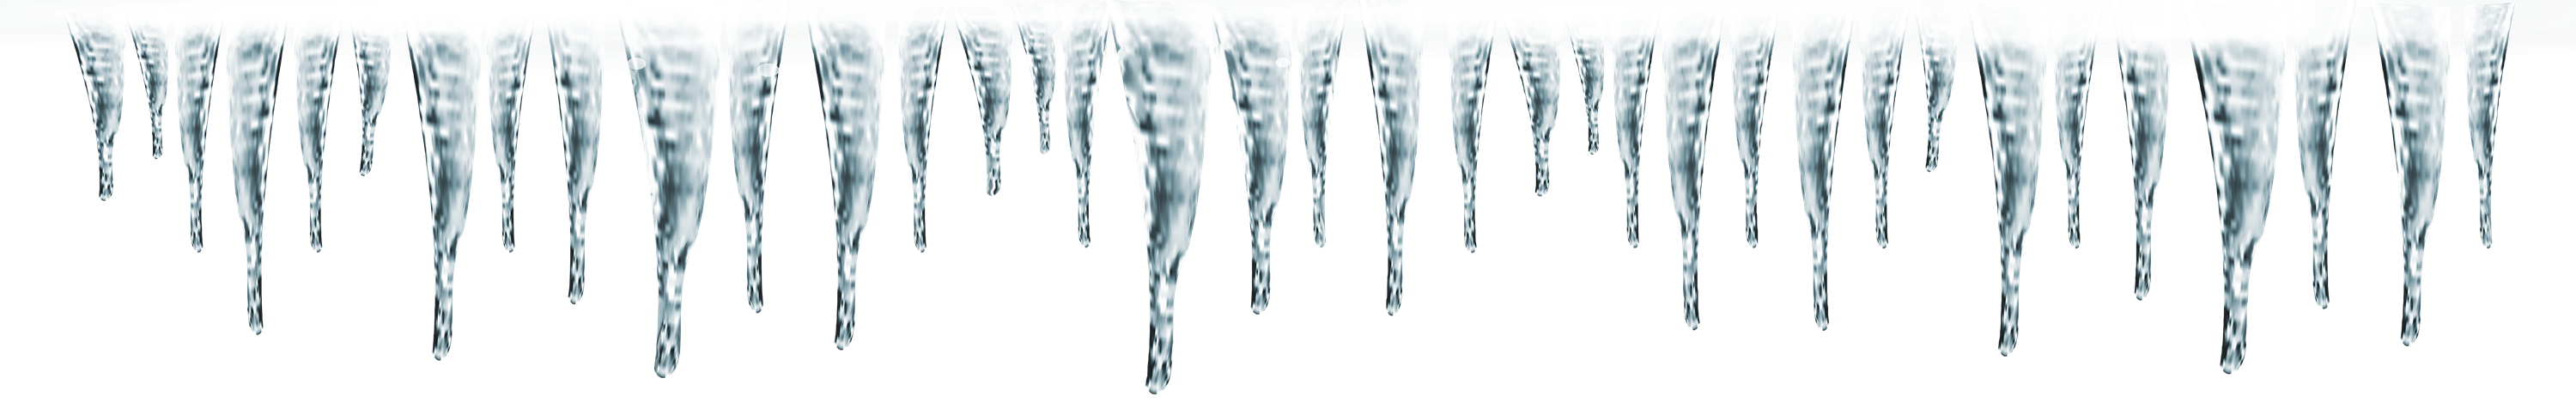 Icicles transparent png. Images arts